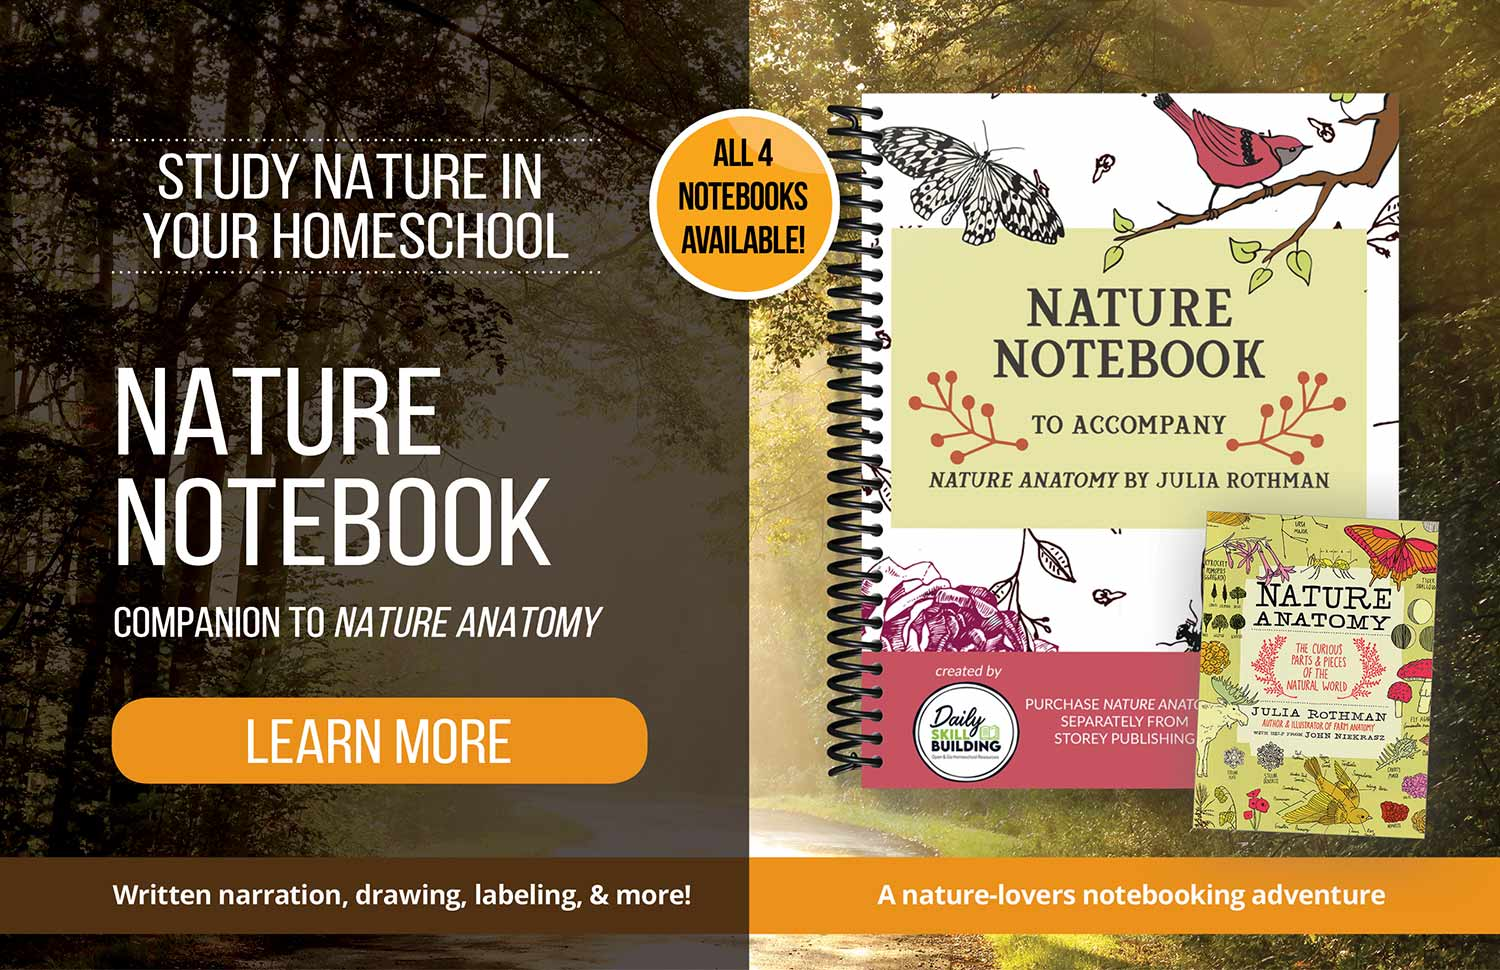 Daily Skill Building Nature Notebook Advertisement